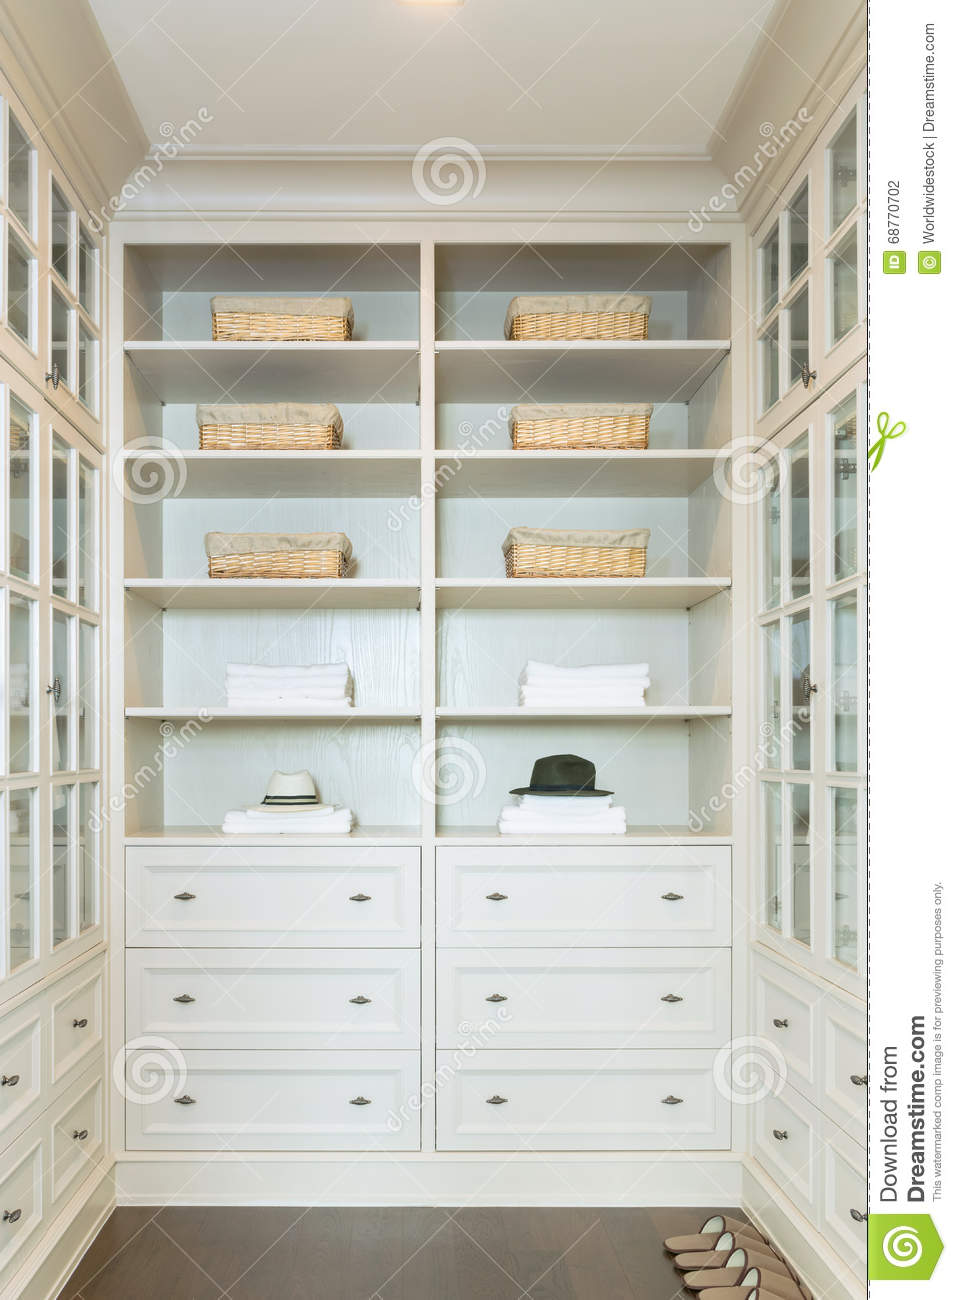 Merveilleux Large White Walk In Closet With Shelves